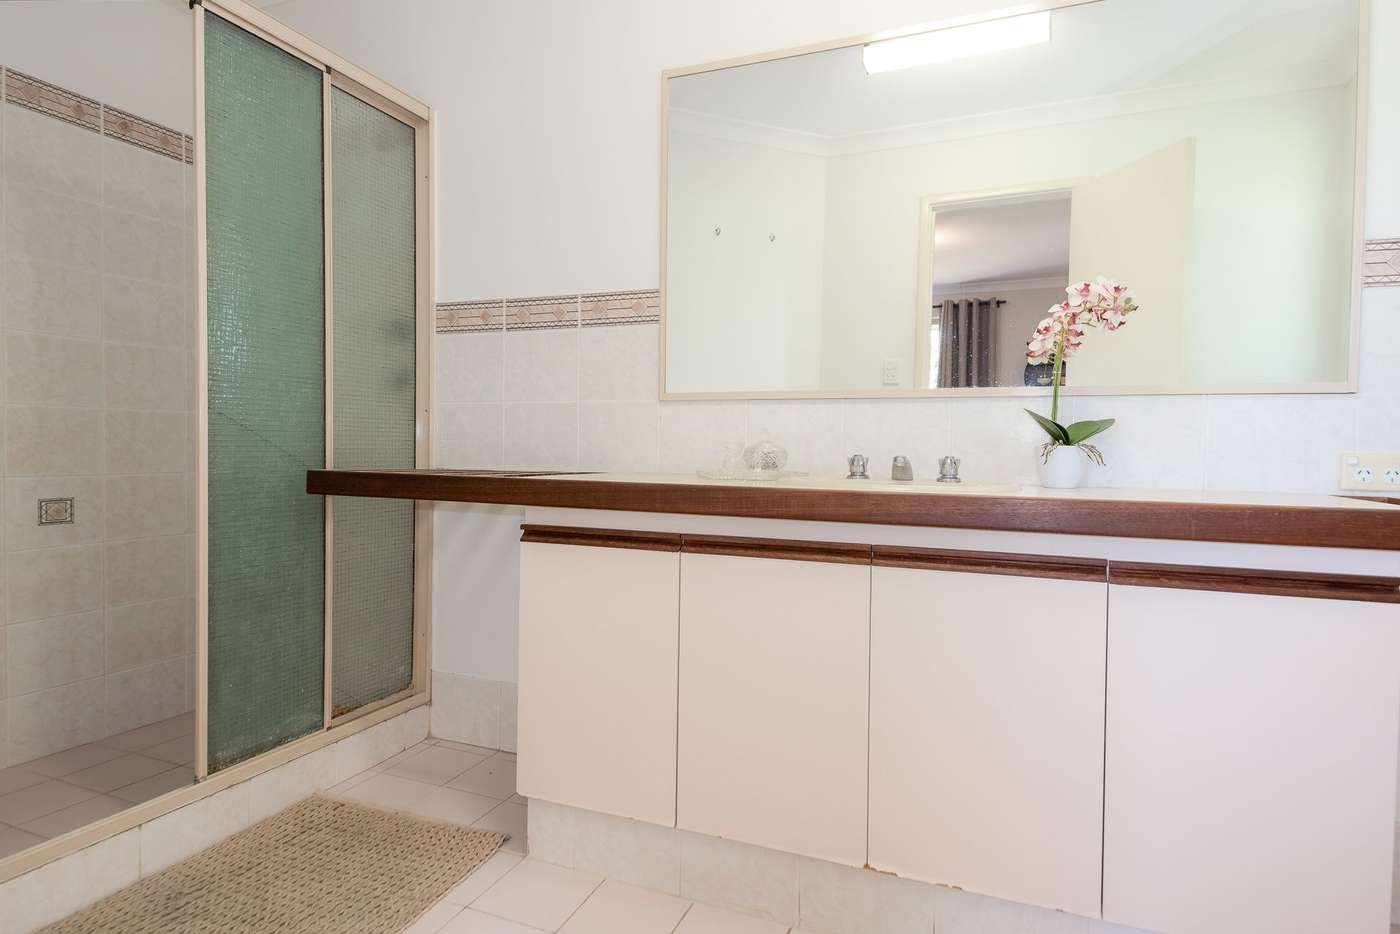 Seventh view of Homely house listing, 17 Barnes Avenue, Australind WA 6233